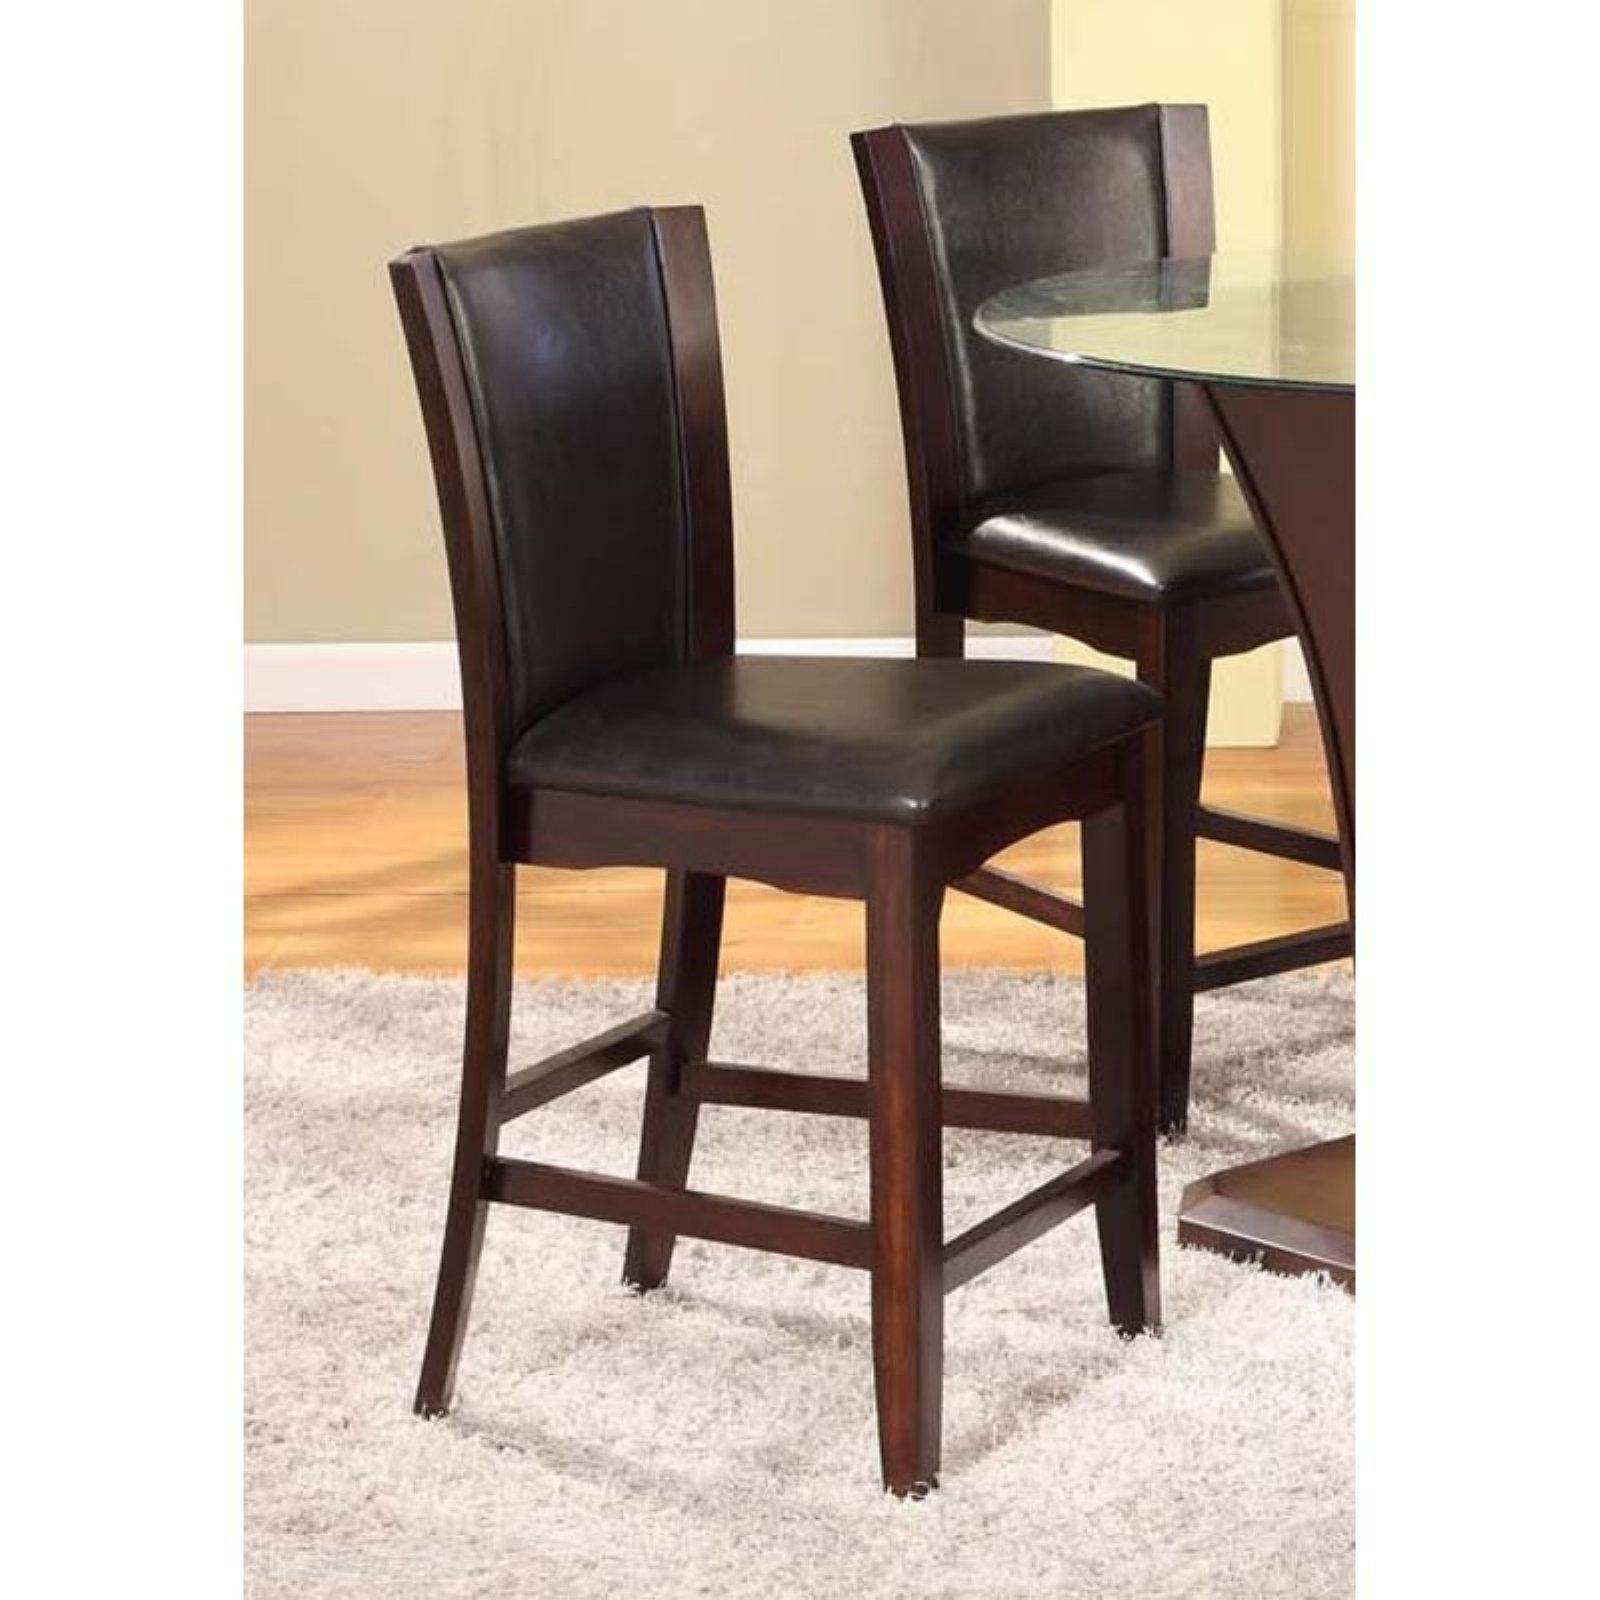 Roundhill Furniture Kecco Solid Wood Counter Height Stools Set Of 2 Counter Height Stools 24 Bar Stools Bar Stools